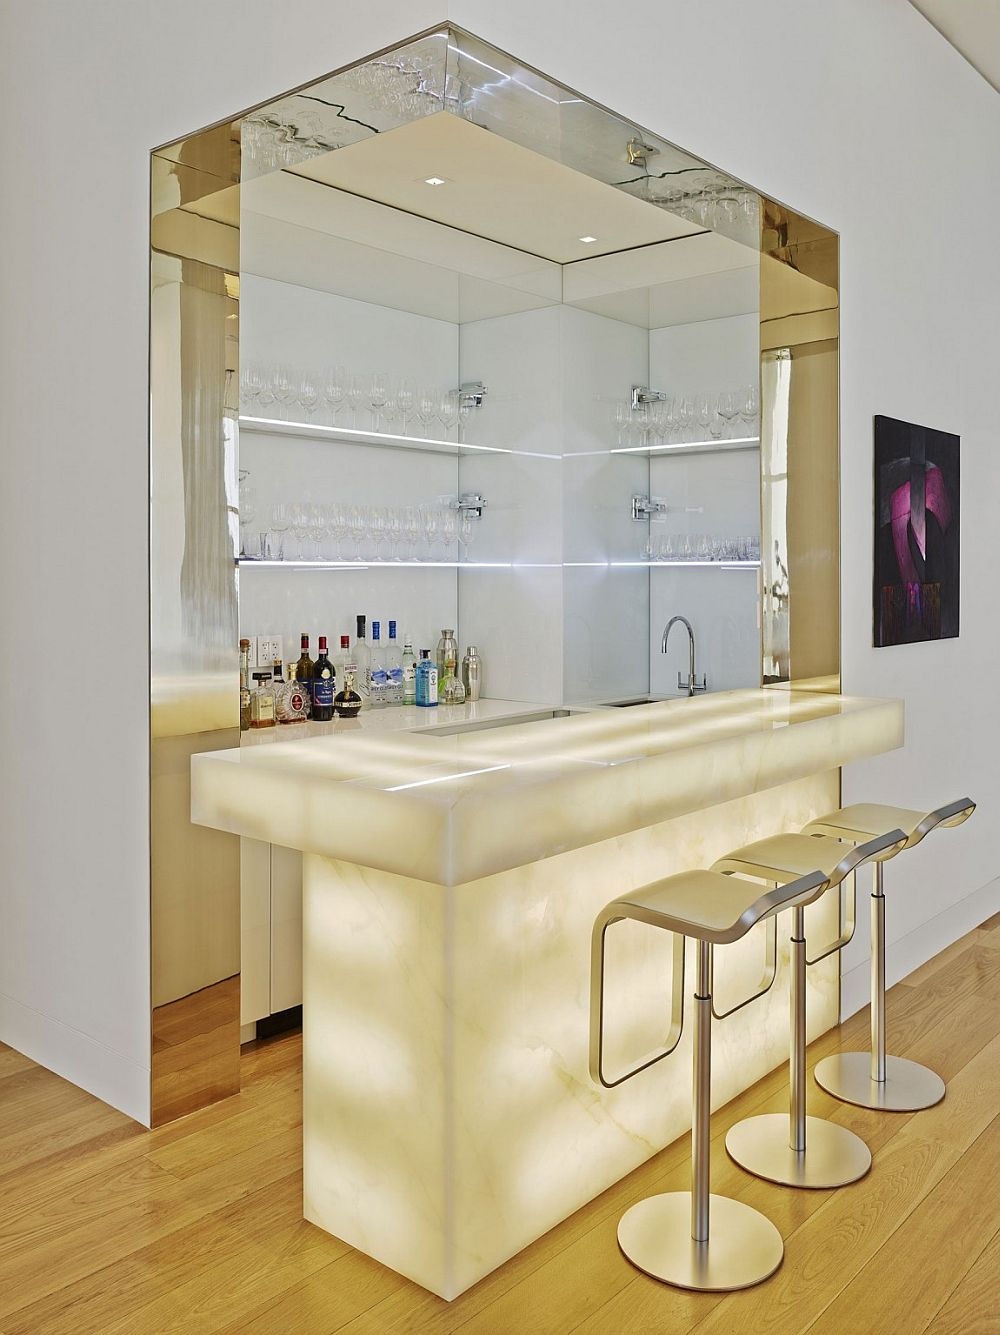 Lighting steals the show at this beautiful home bar